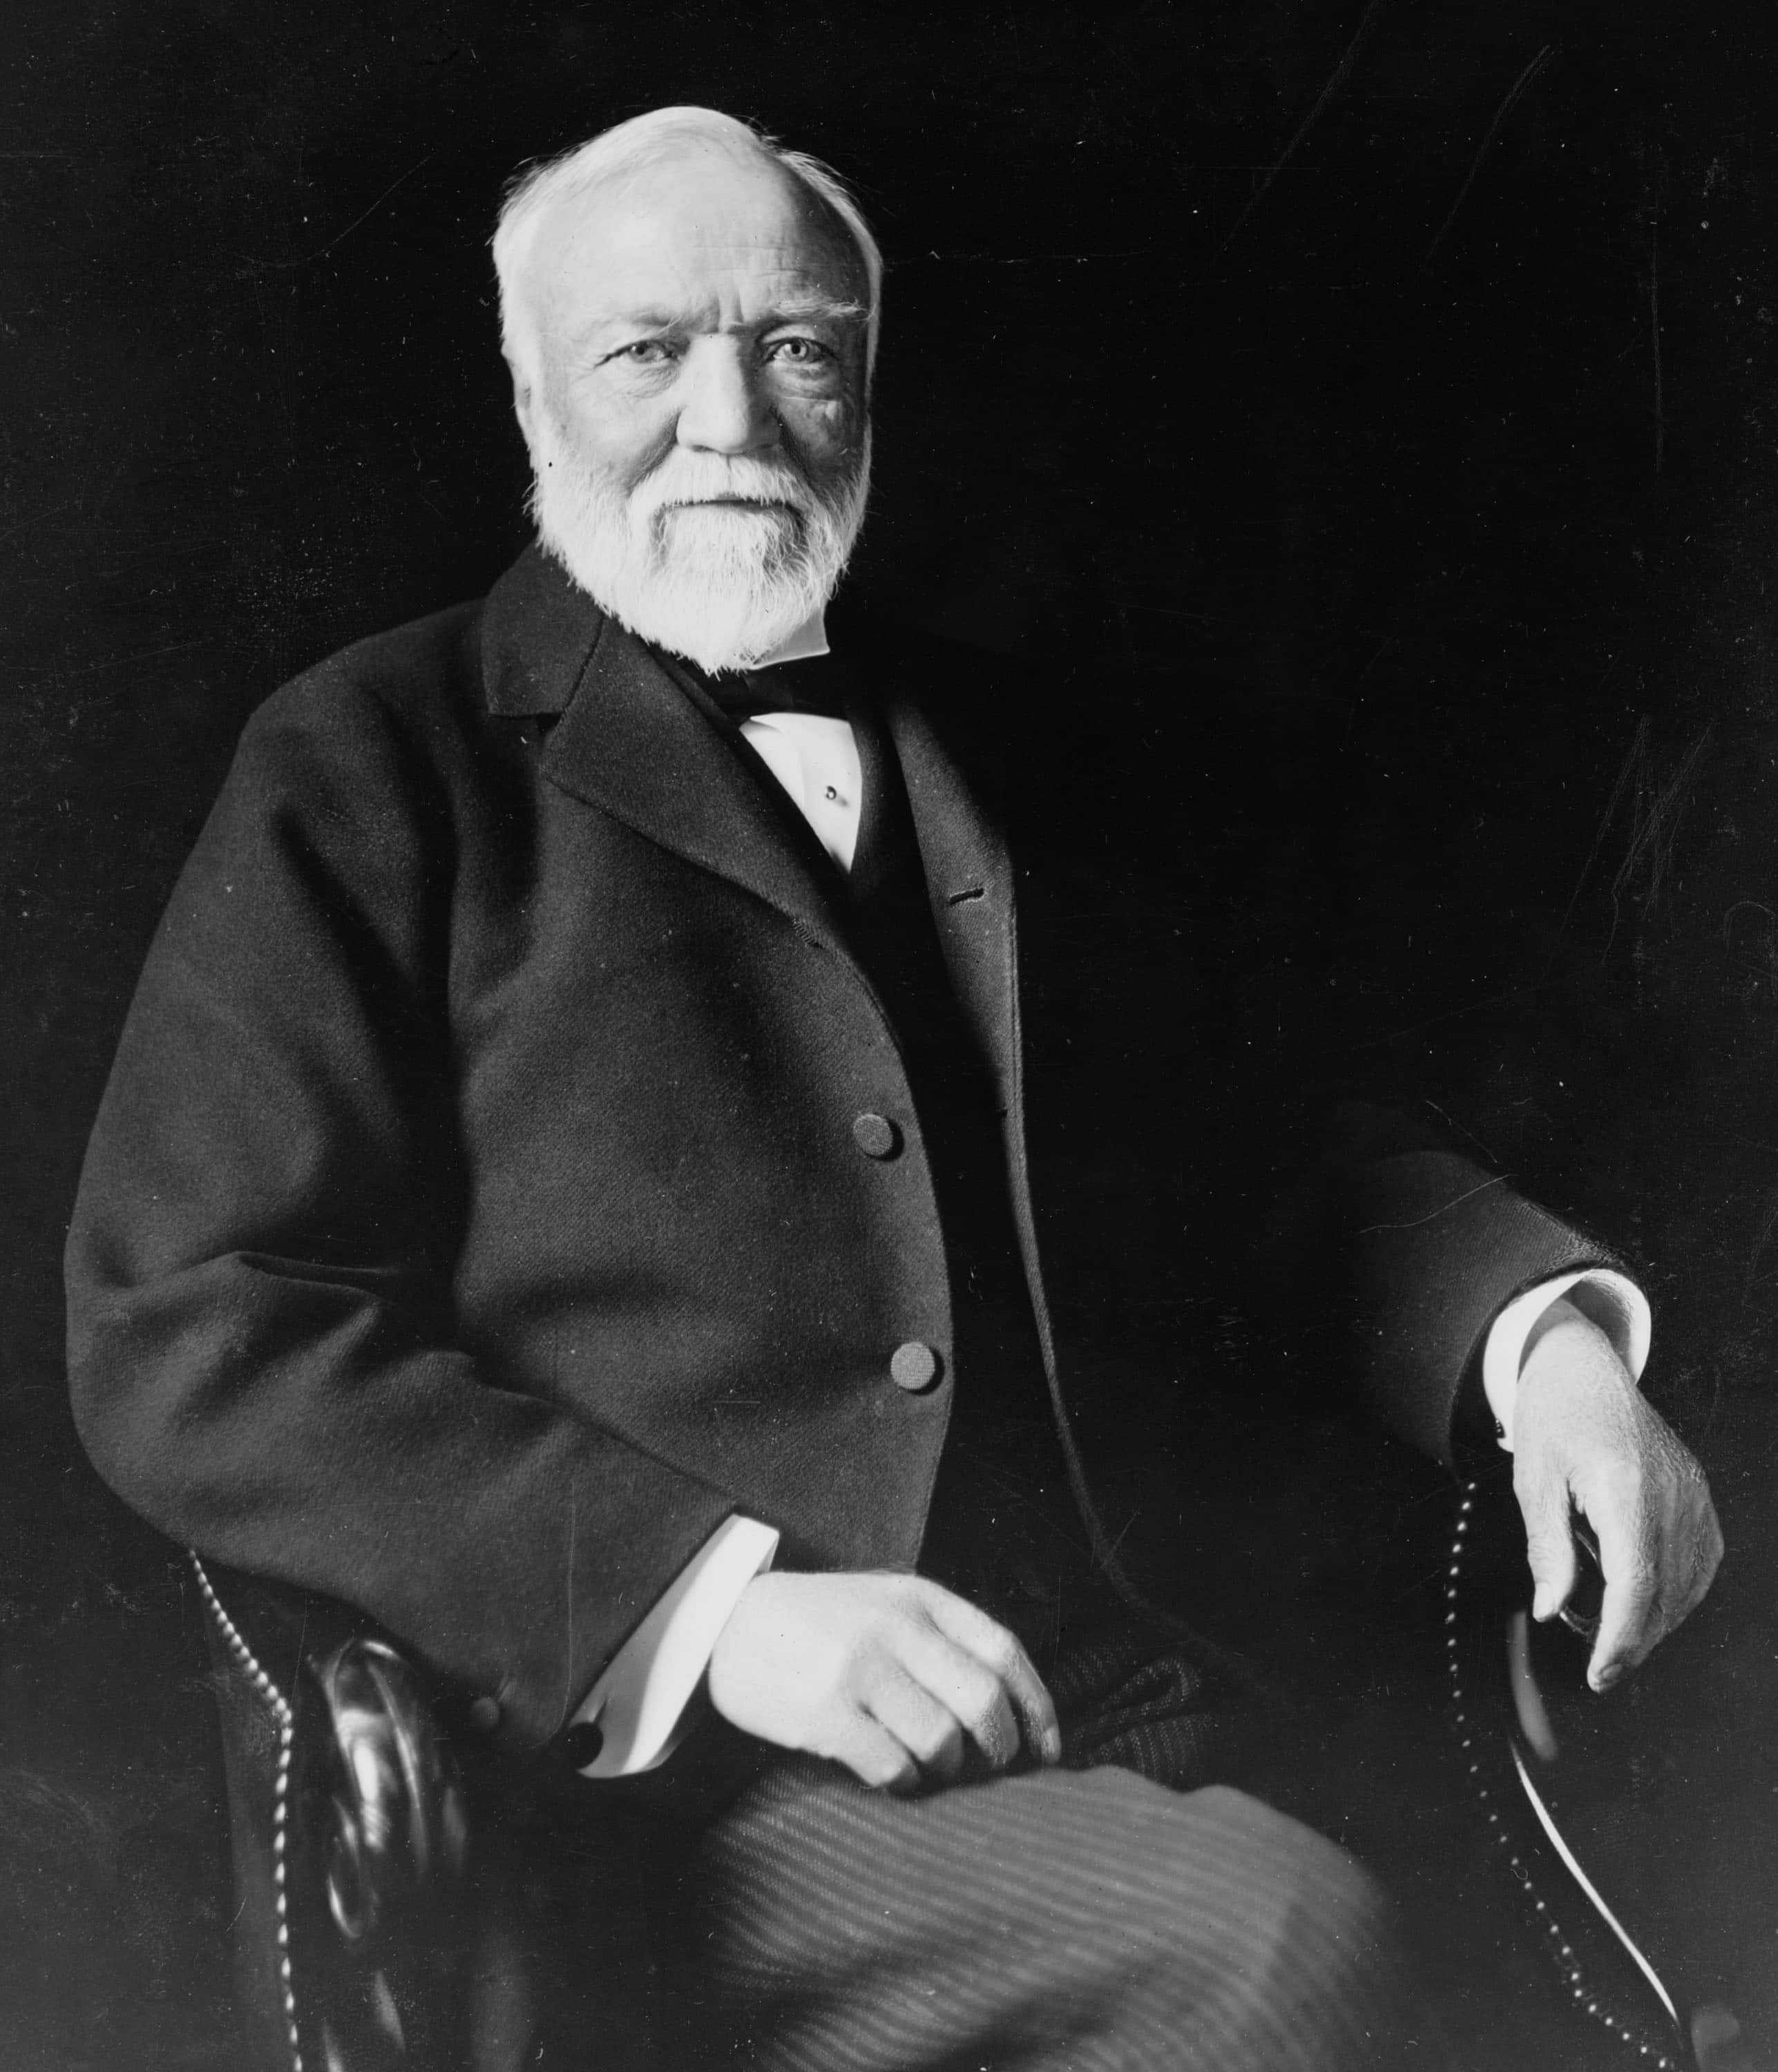 andrew_carnegie_three-quarter_length_portrait_seated_facing_slightly_left_1913